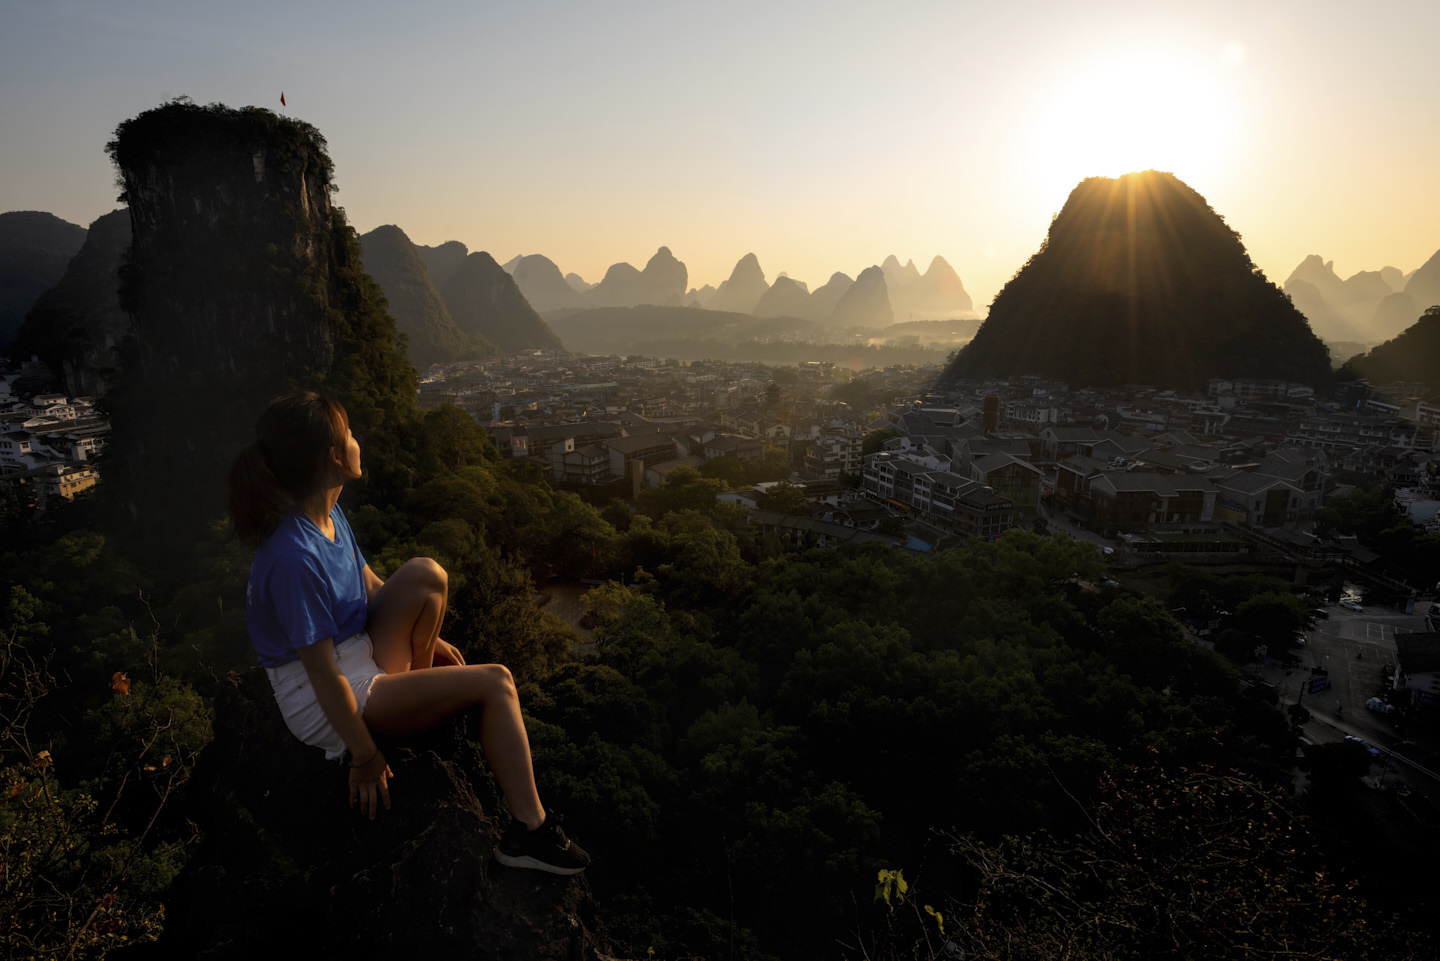 Ella sits at the summit, looking out towards Xing Ping, the Li River, distant mountains and the rising sun.